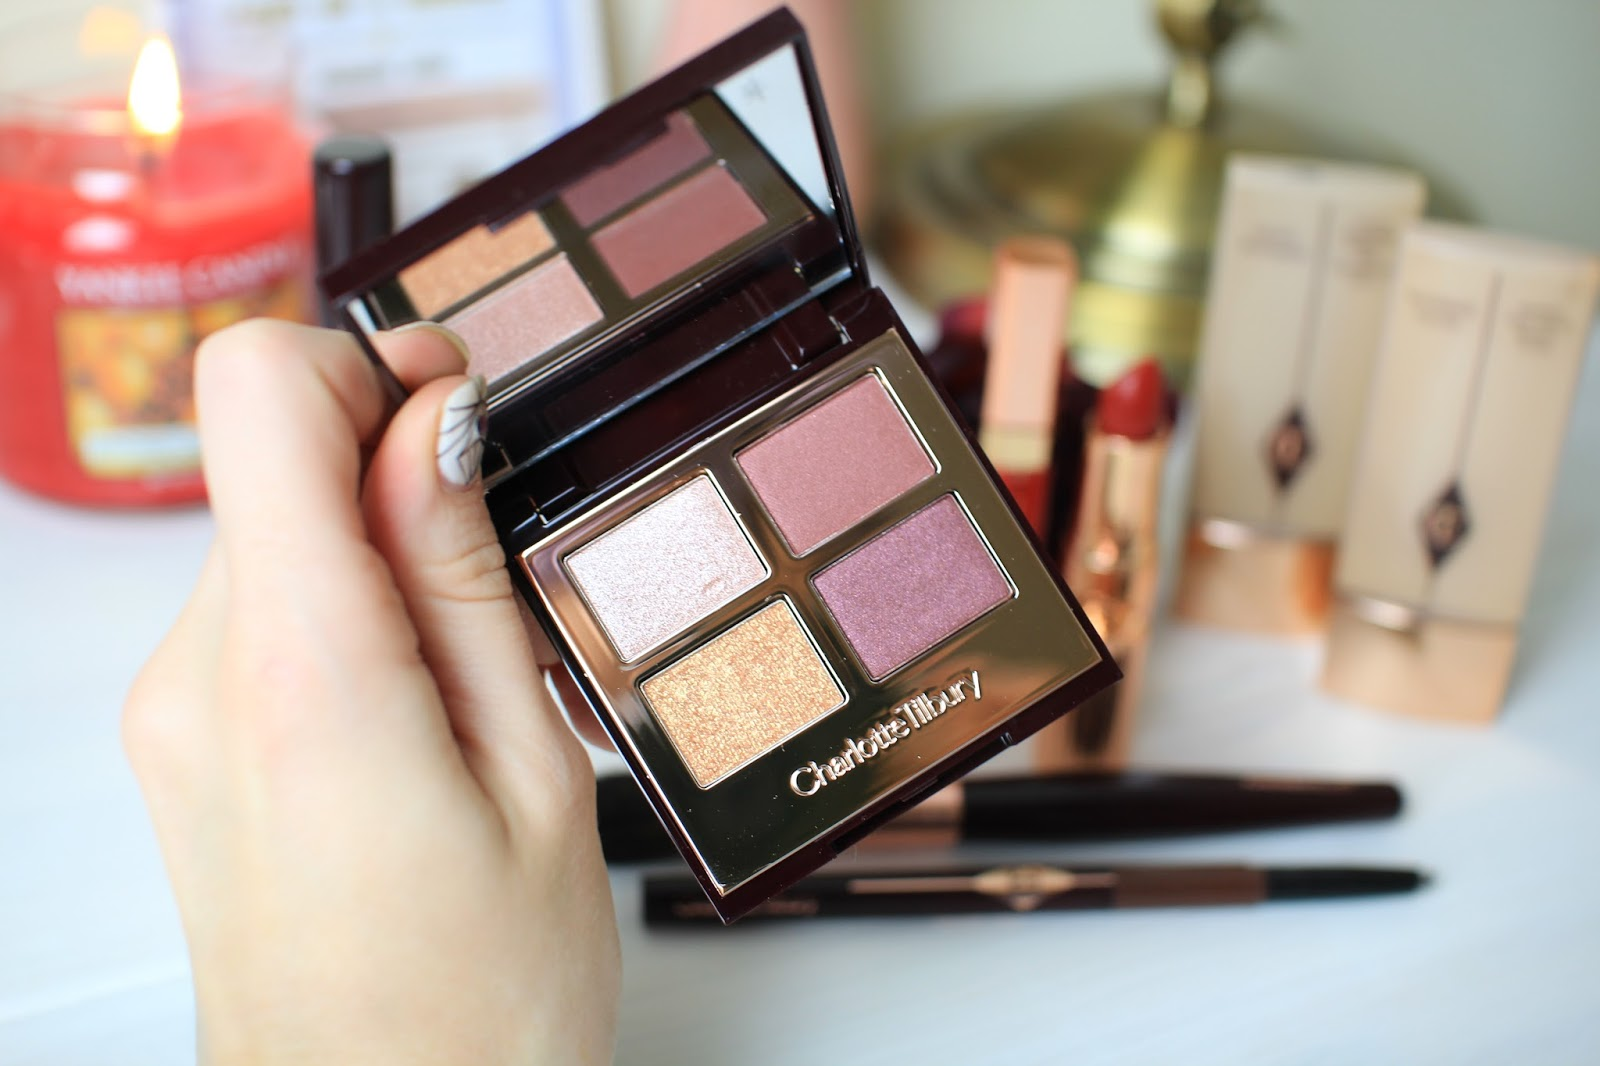 Charlotte Tilbury vintage vamp colour-coded eyeshadow palette